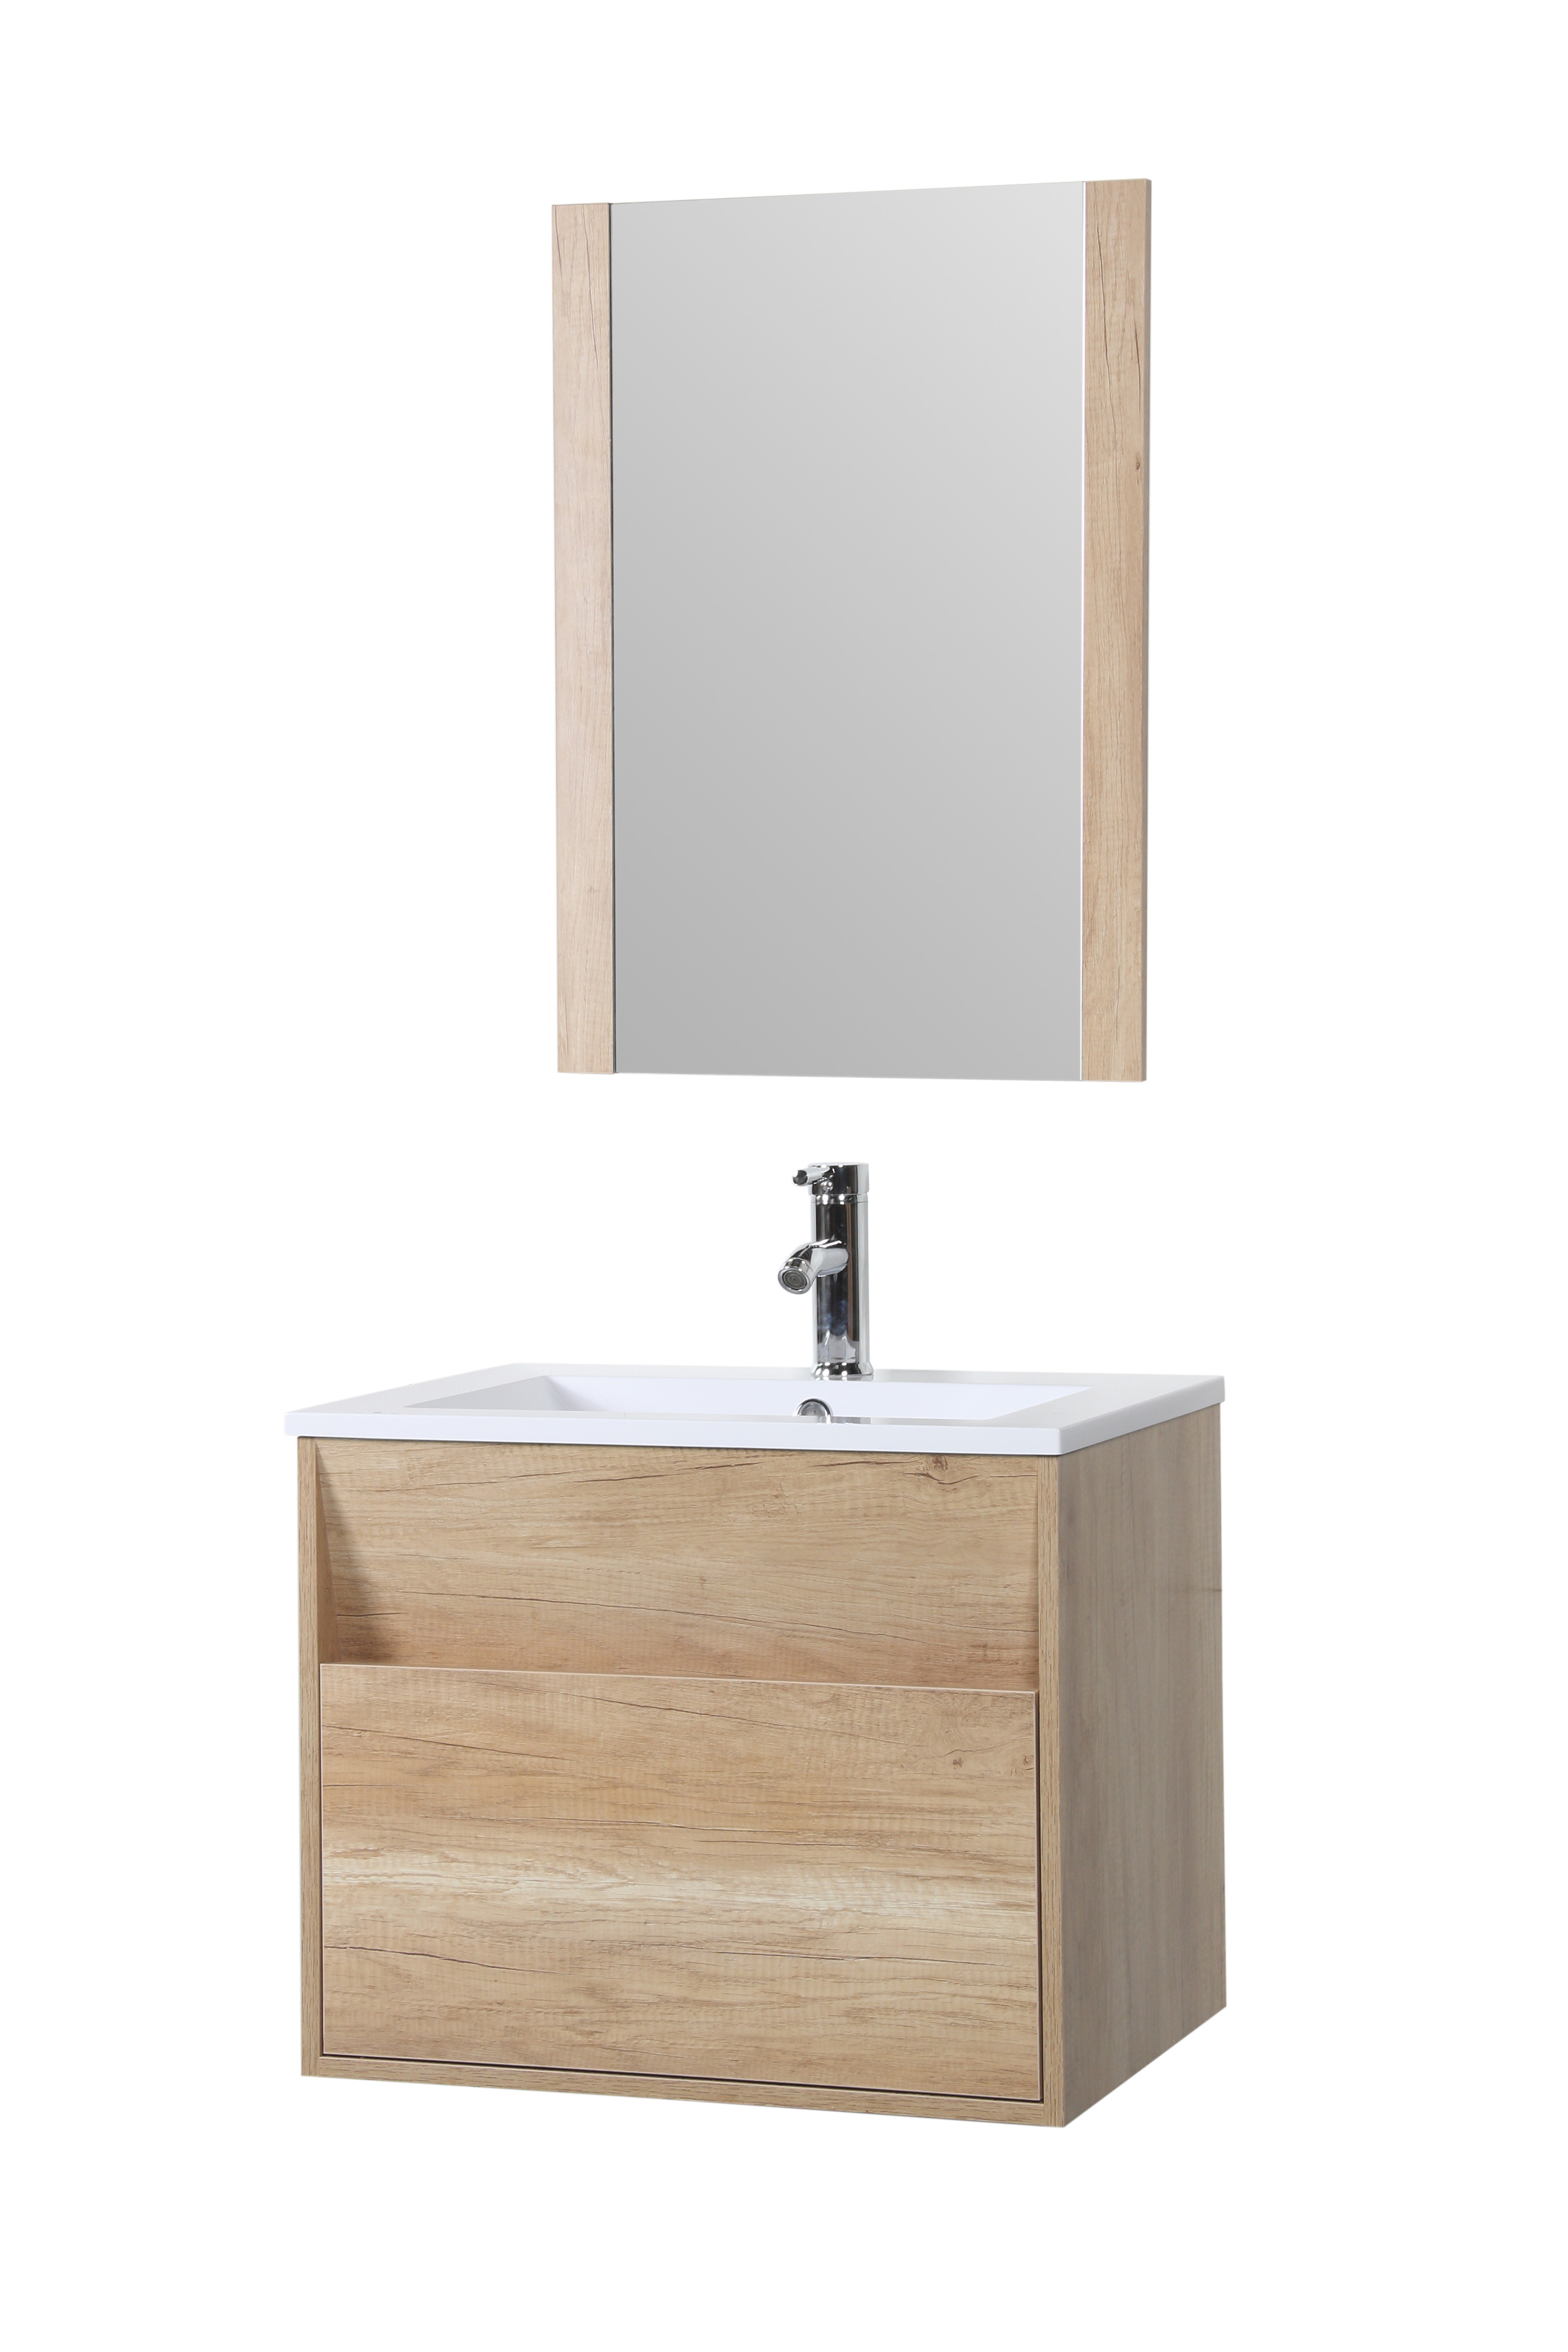 Lorah Washbasin with Cabinet, gallery image 1